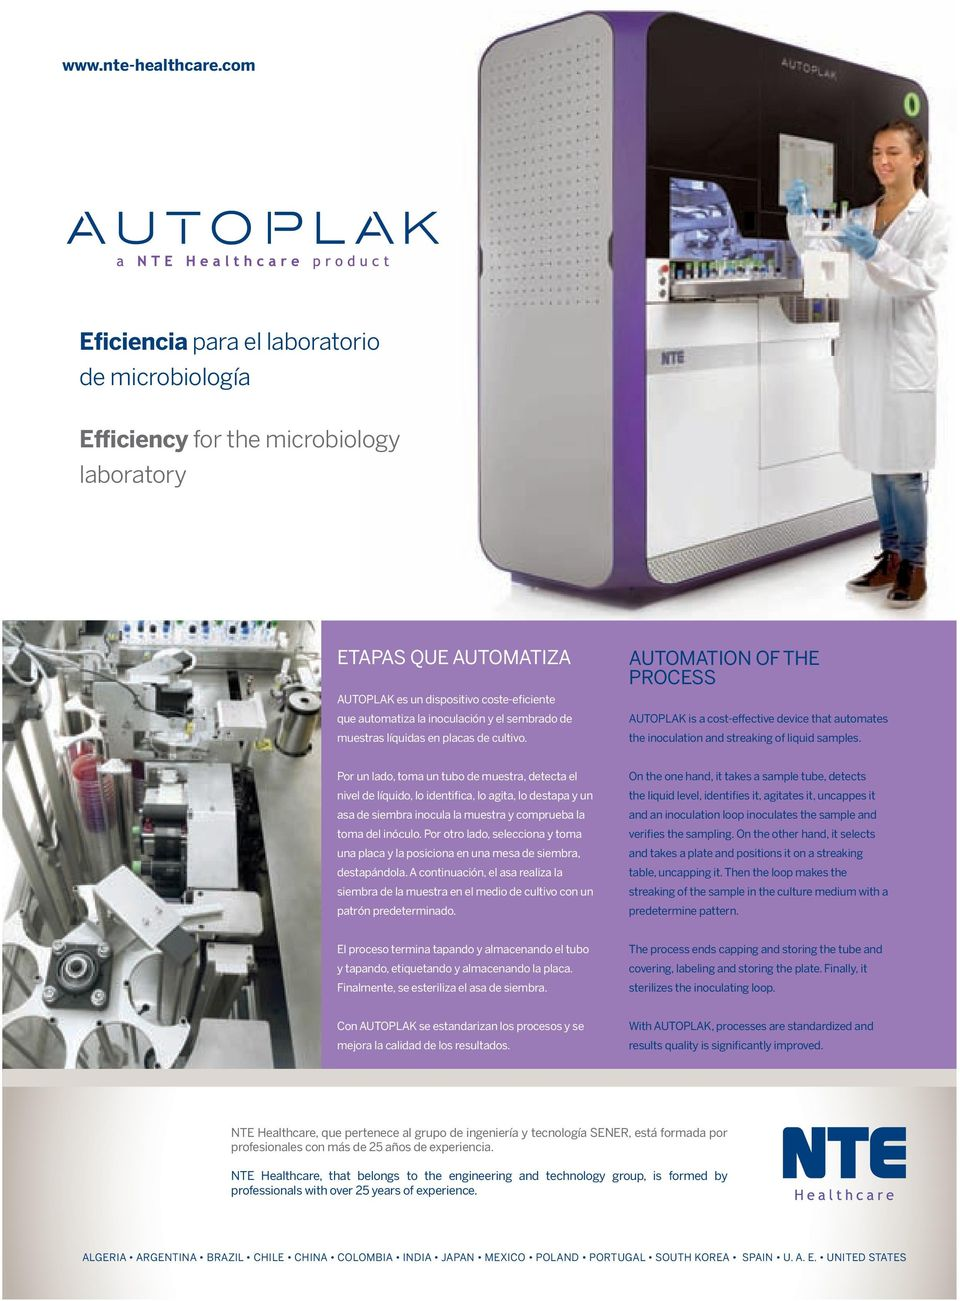 sembrado de muestras líquidas en placas de cultivo. AUTOMATION OF THE PROCESS AUTOPLAK is a cost-effective device that automates the inoculation and streaking of liquid samples.